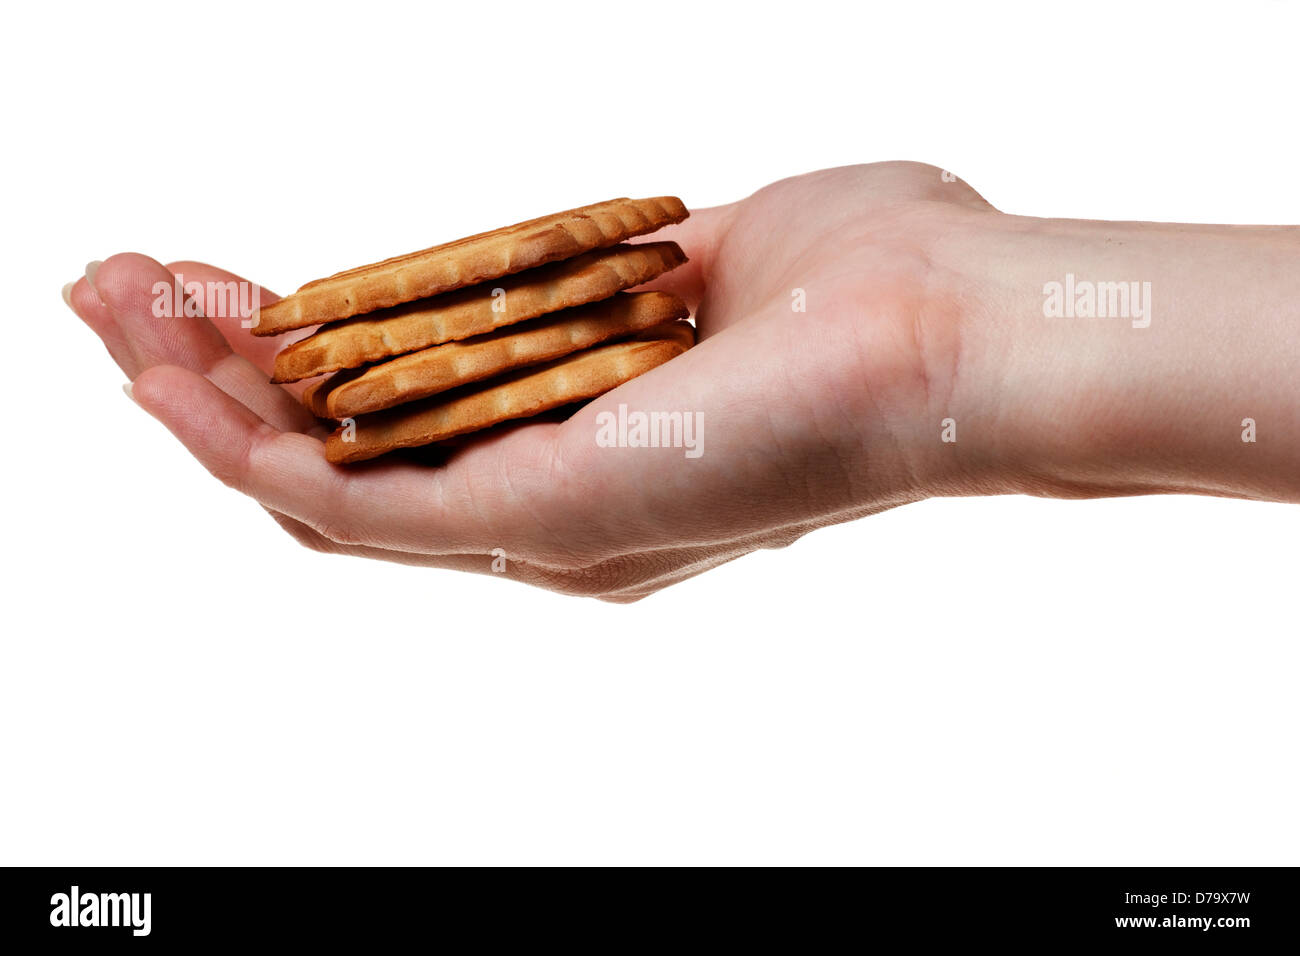 Oatmeal cookies in the woman hand. - Stock Image